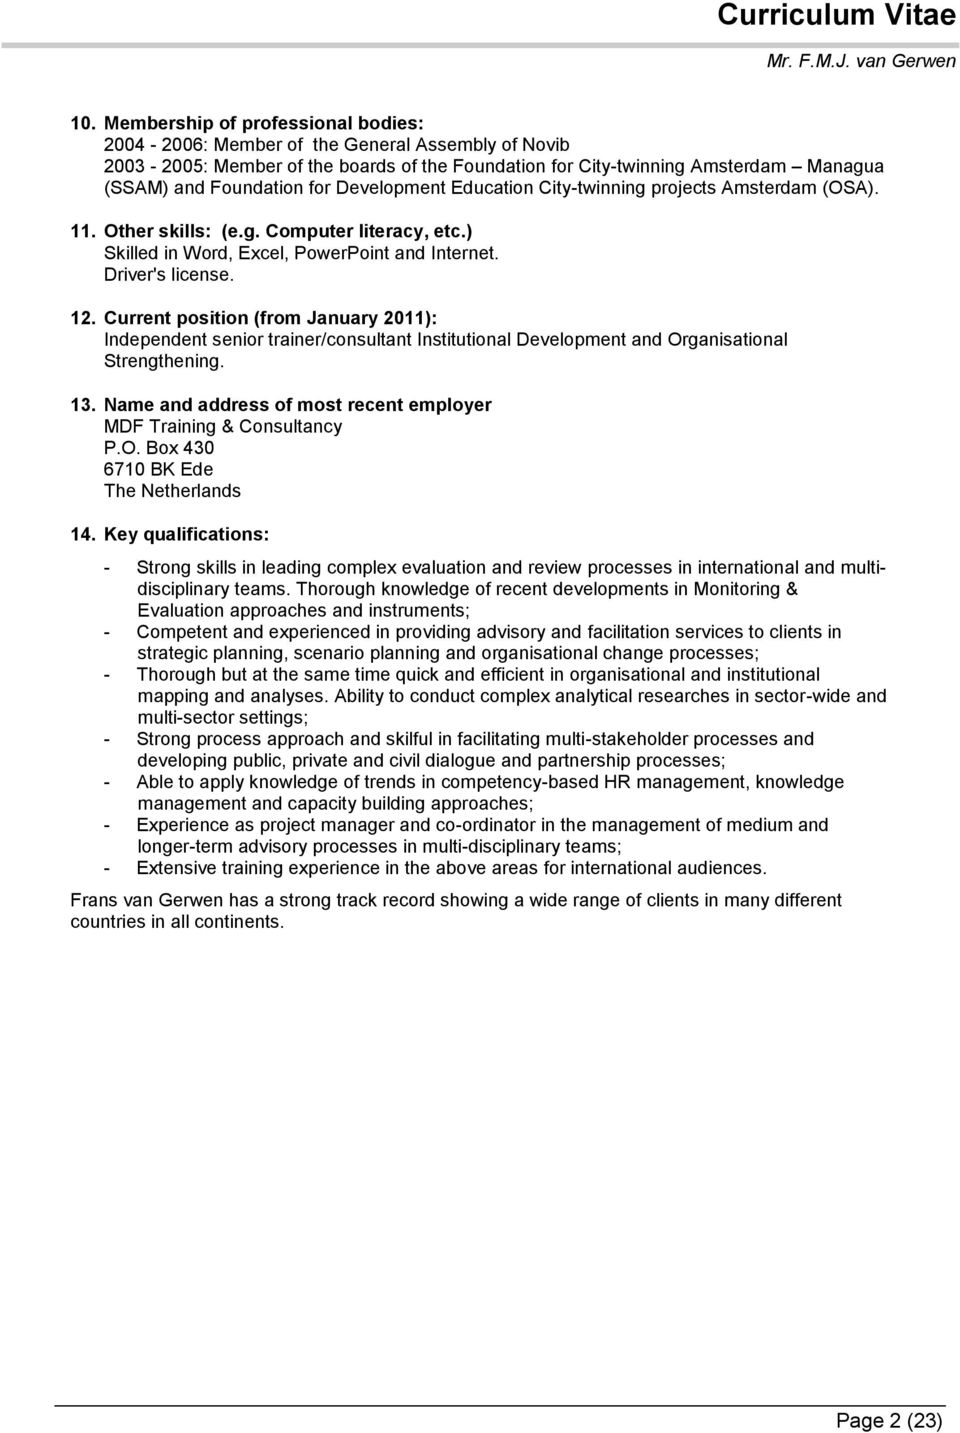 Current position (from January 2011): Independent / Institutional Development and Organisational Strengthening. 13. Name and address of most recent employer MDF Training & Consultancy P.O. Box 430 6710 BK Ede The 14.